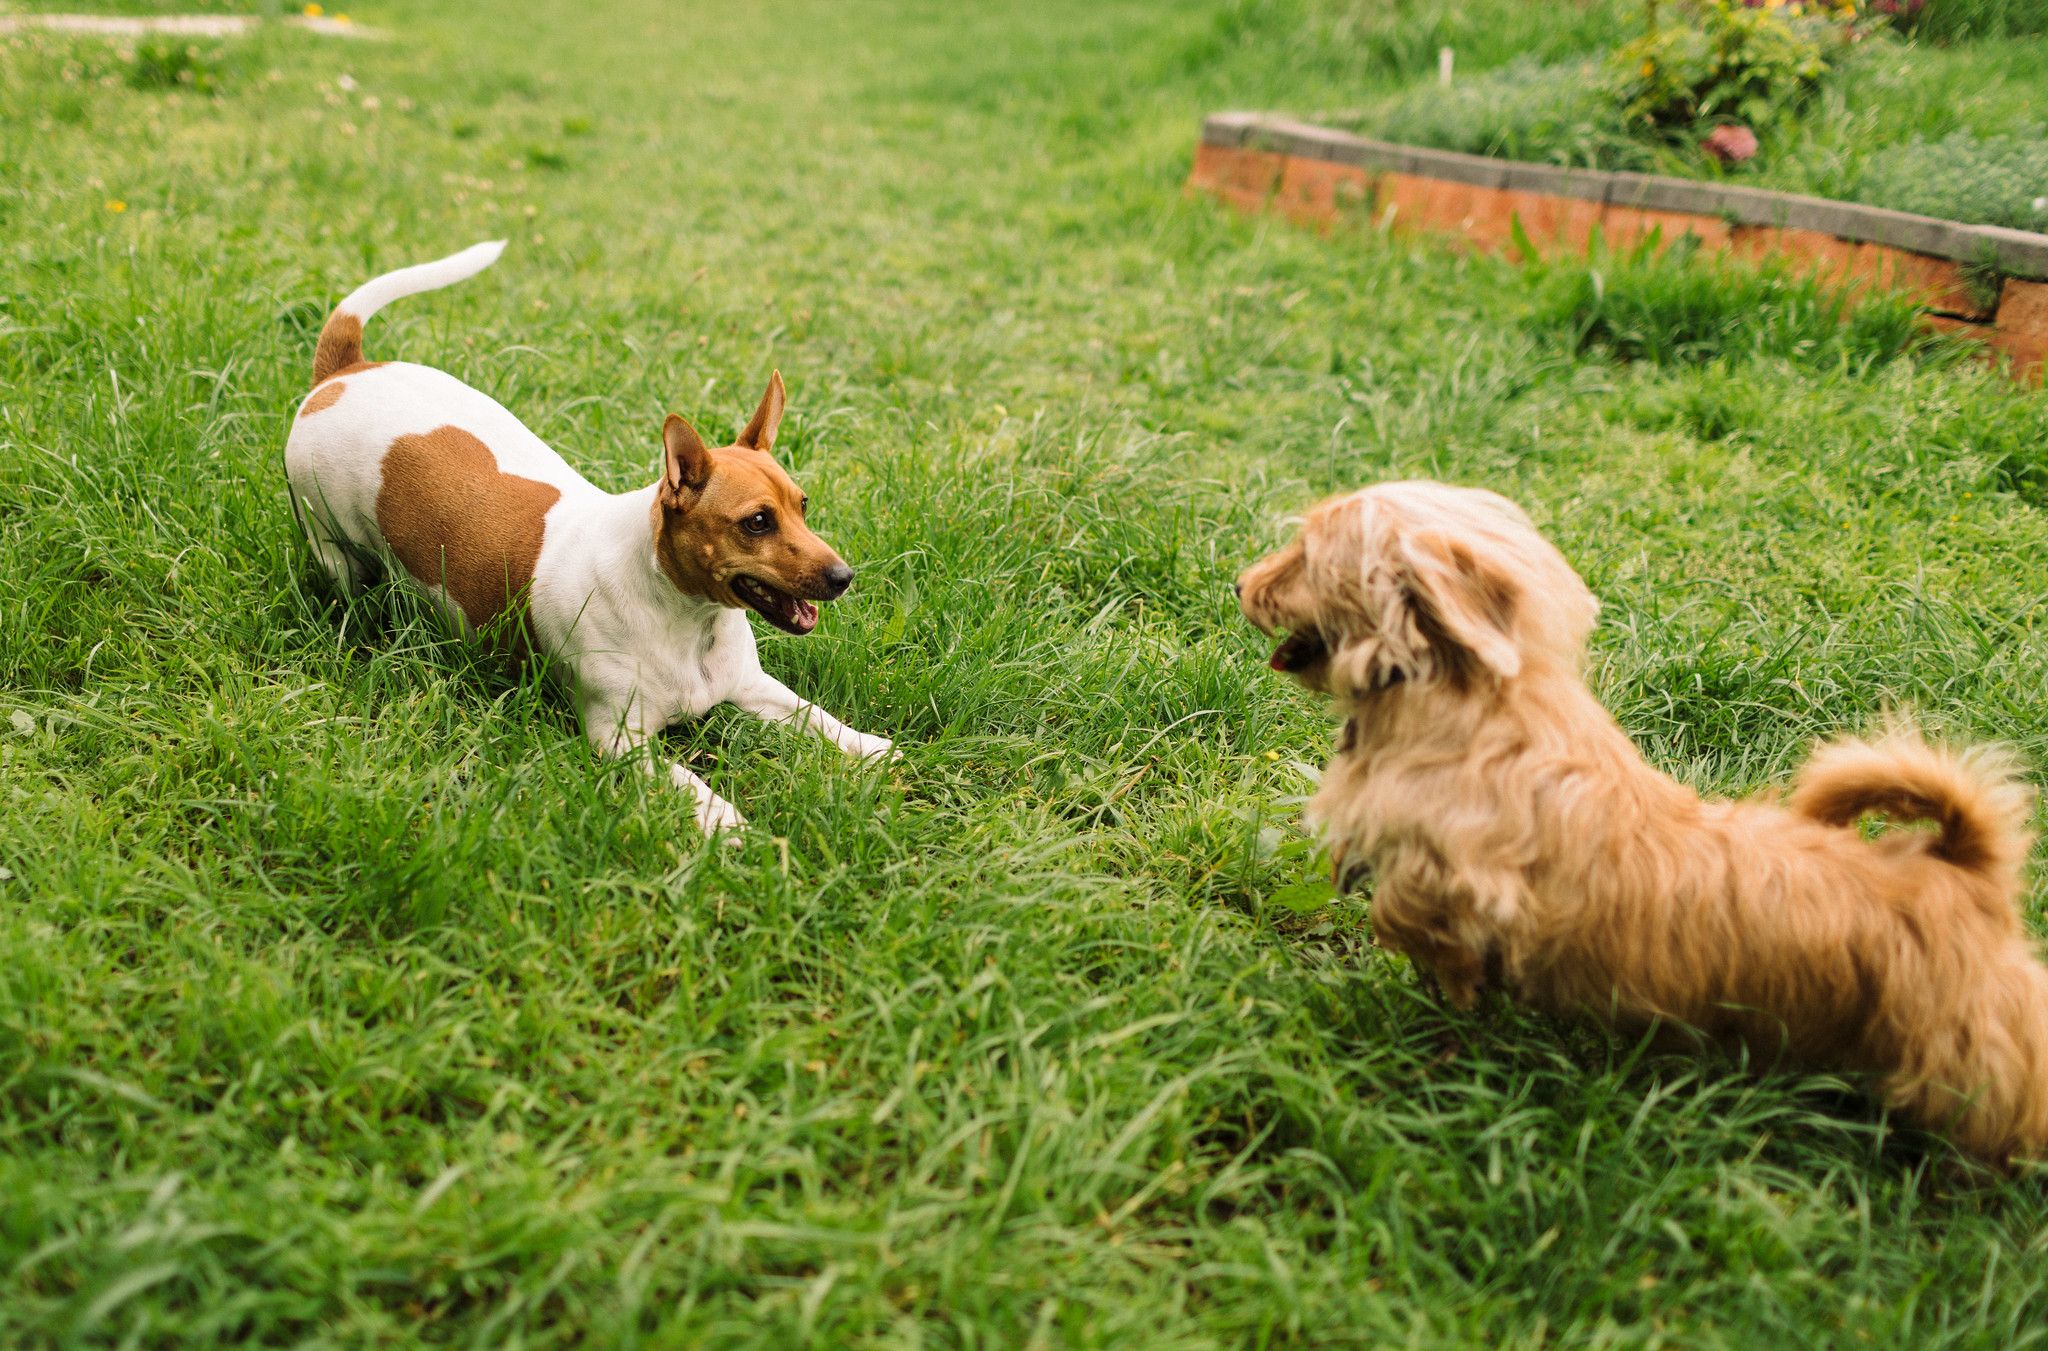 Leo, a Jack Russell, and Beanie facing each other about to leap at each other.